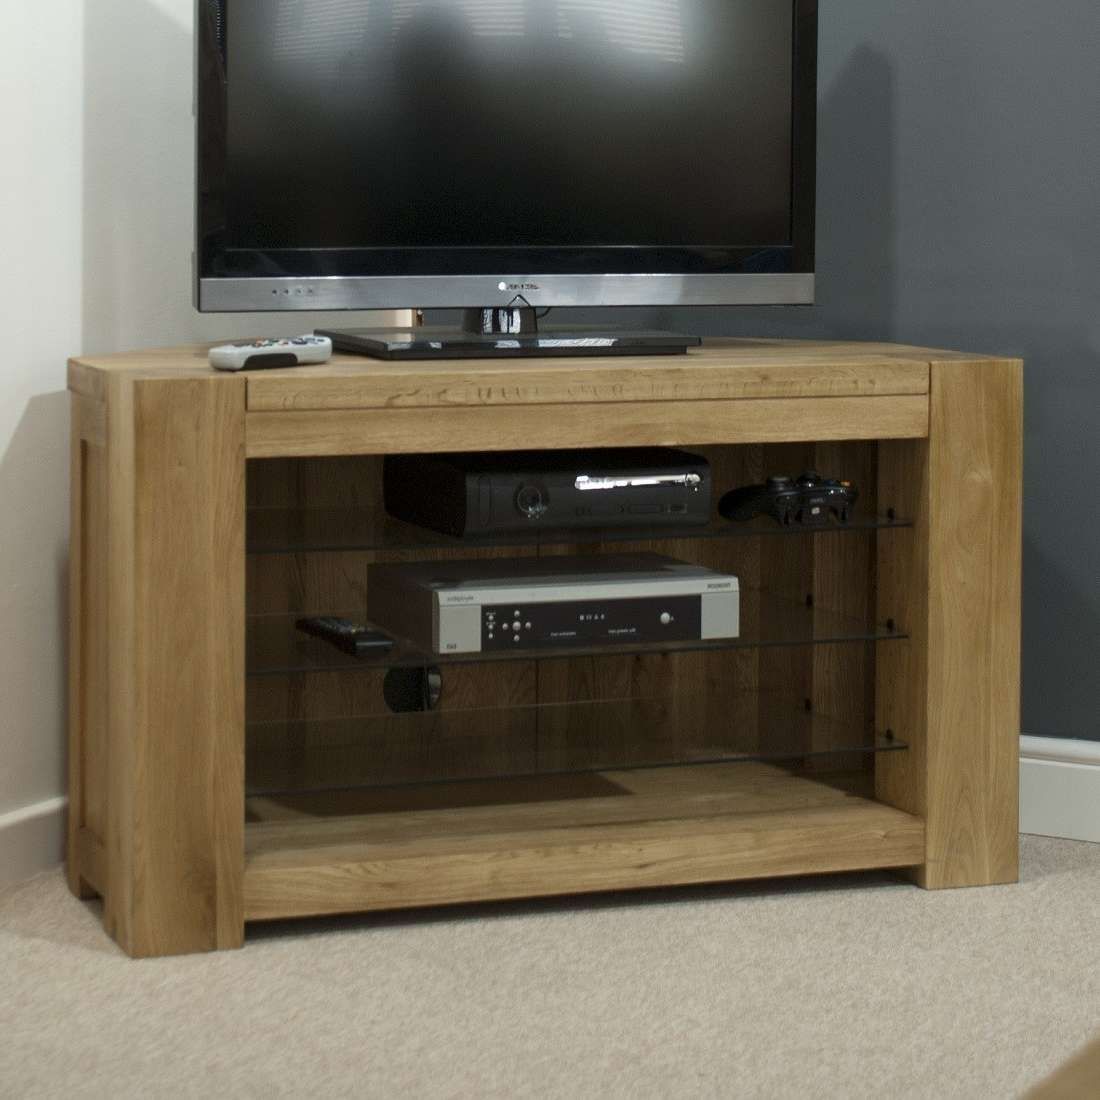 Trend Solid Oak Corner Tv Unit | Oak Furniture Uk With Light Oak Corner Tv Cabinets (View 14 of 20)